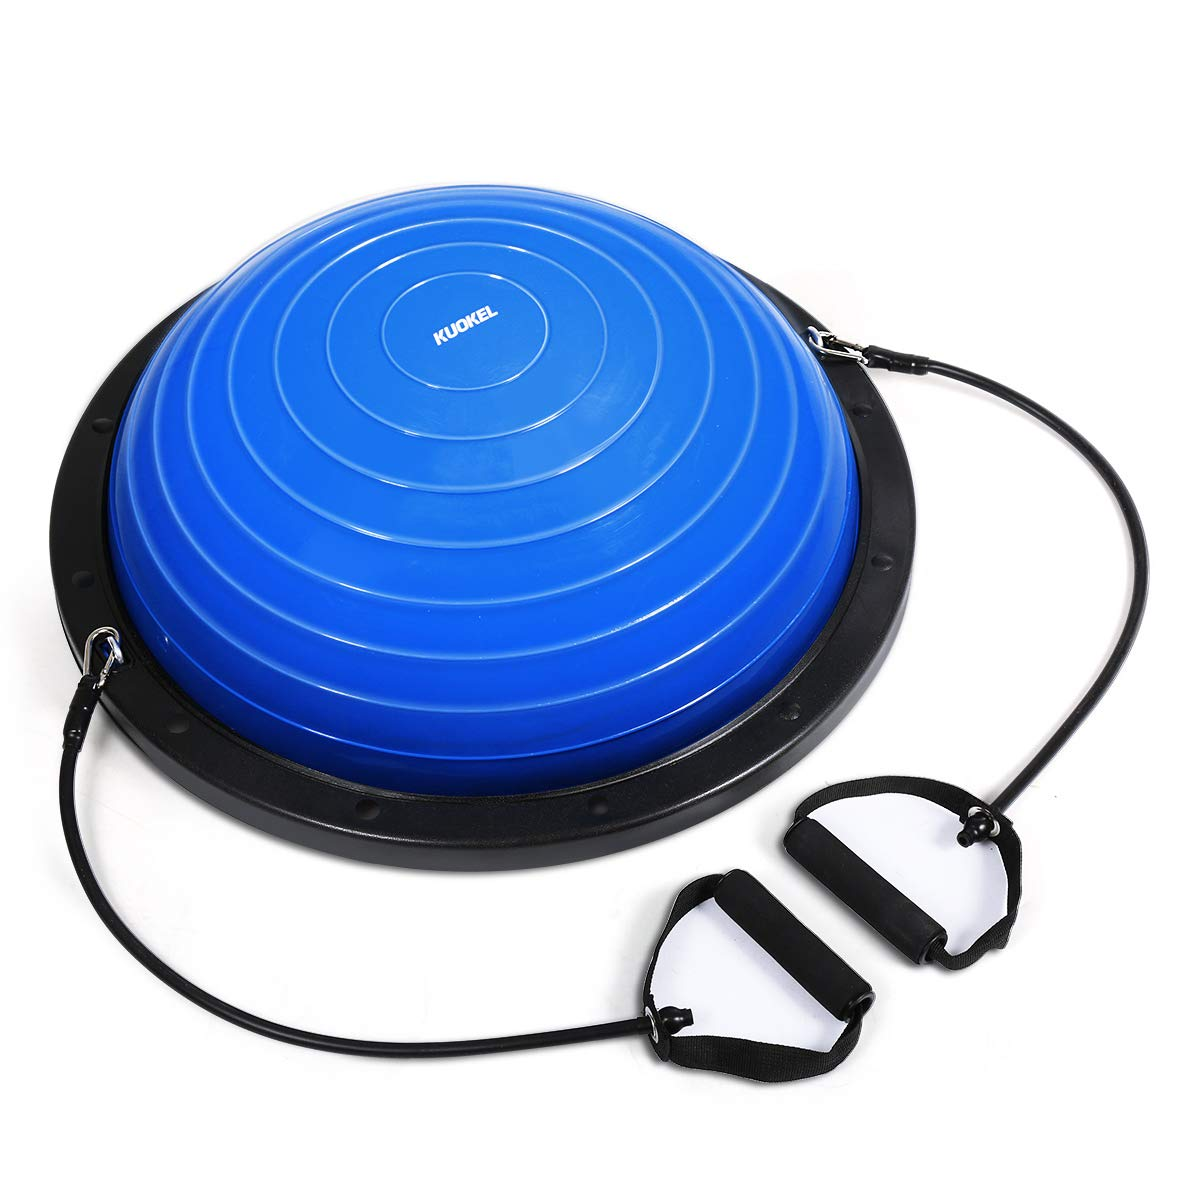 KUOKEL Exercise Balance Ball, Yoga Exercise Ball with Pump Balance Fitness Trainer Home Exercise Training Balance Boards and Foot Pump, 58cm, Blue (Blue)